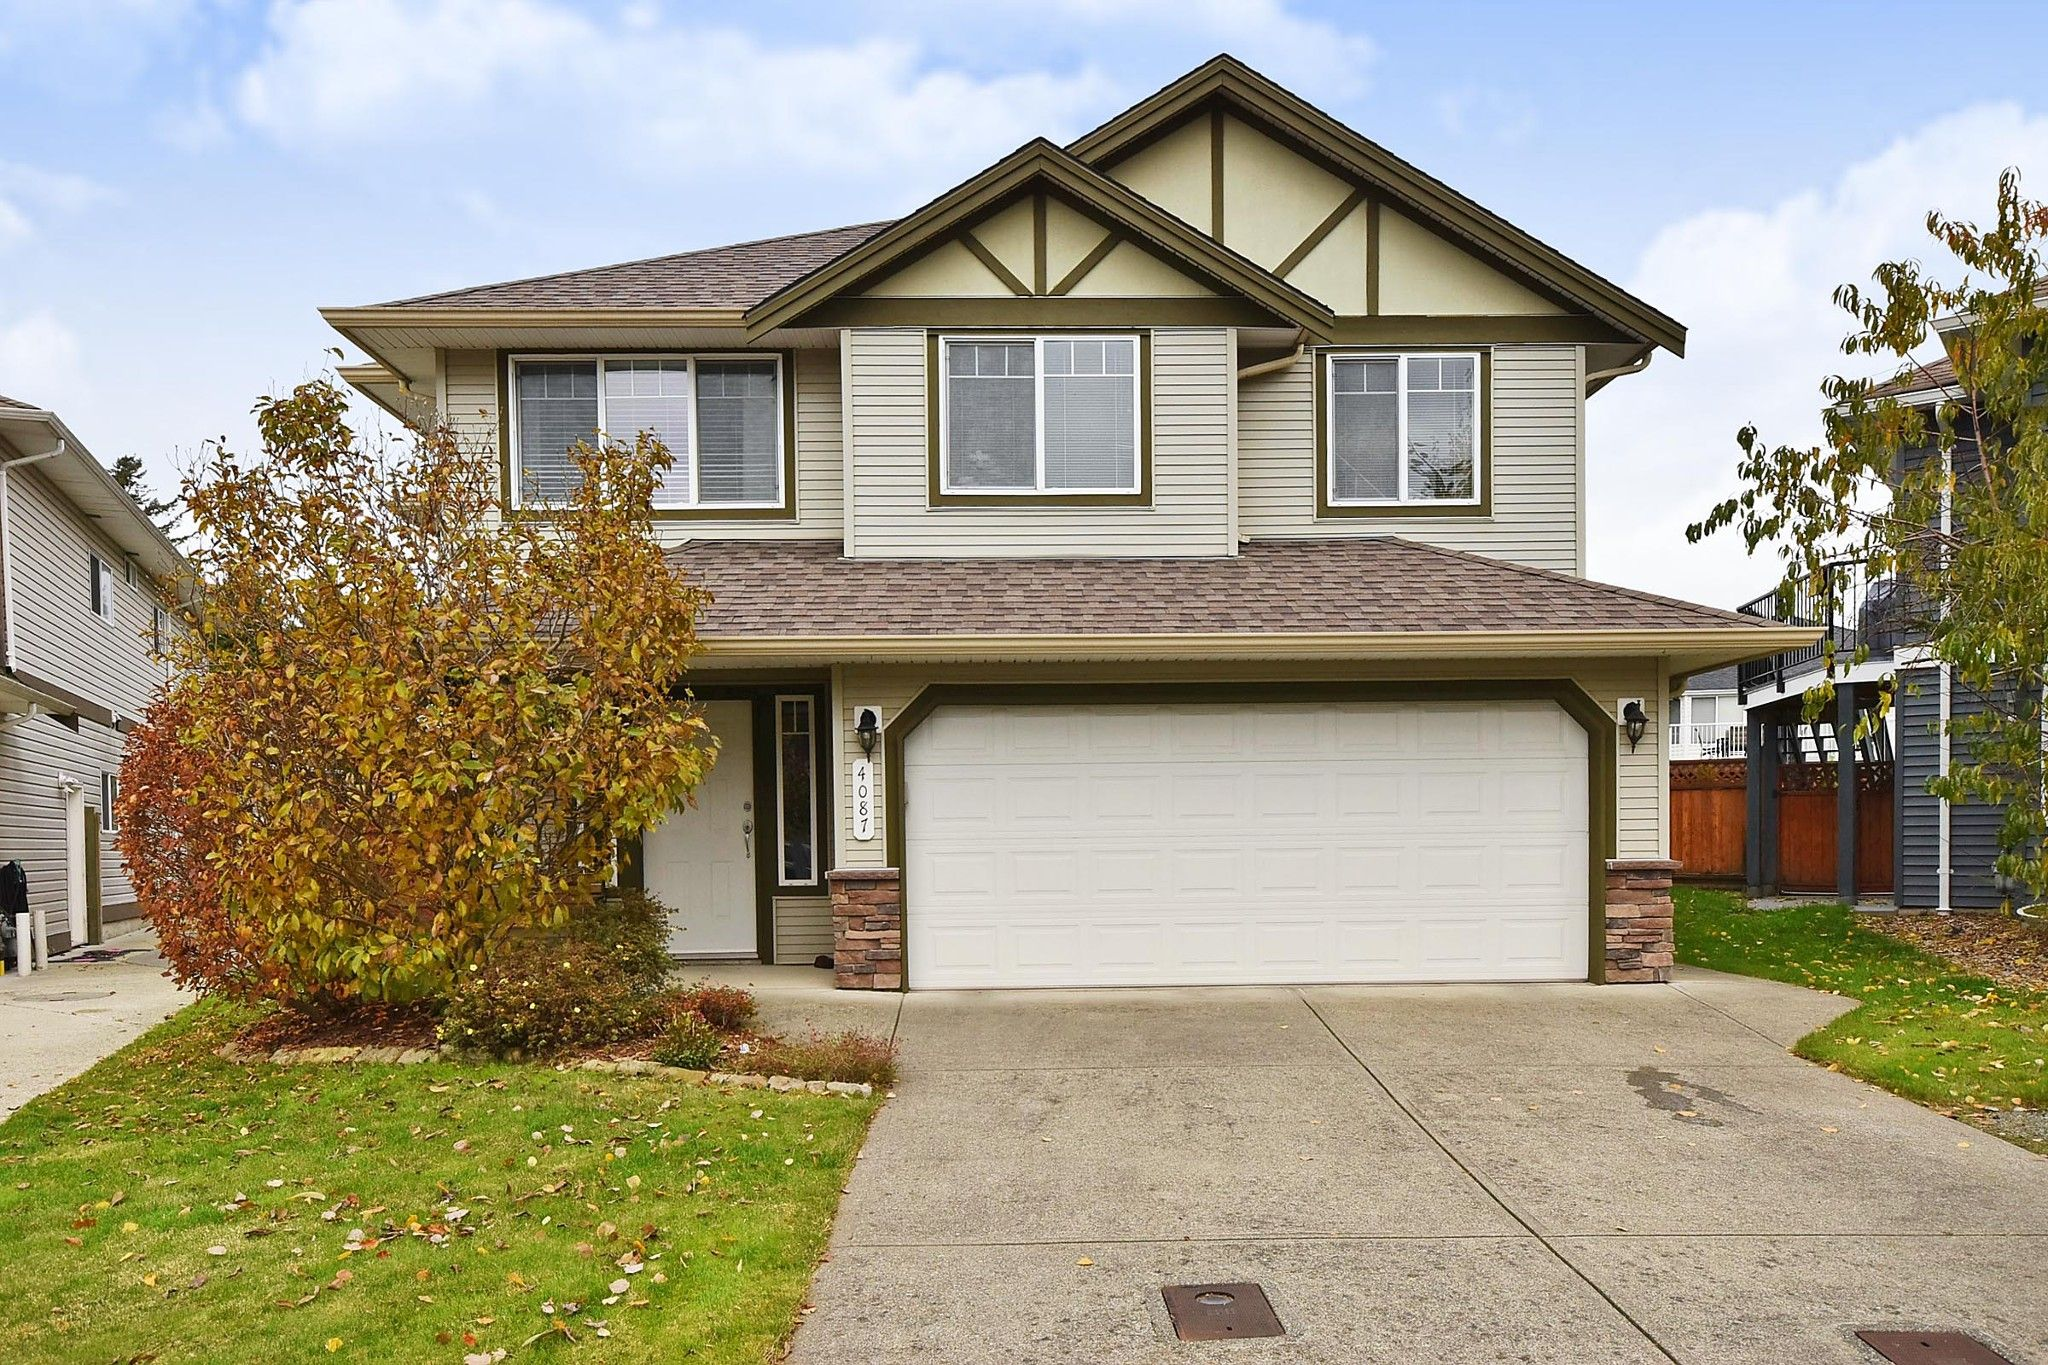 Main Photo: 4087 CHANNEL Street in Abbotsford: Abbotsford East House for sale : MLS®# R2415678